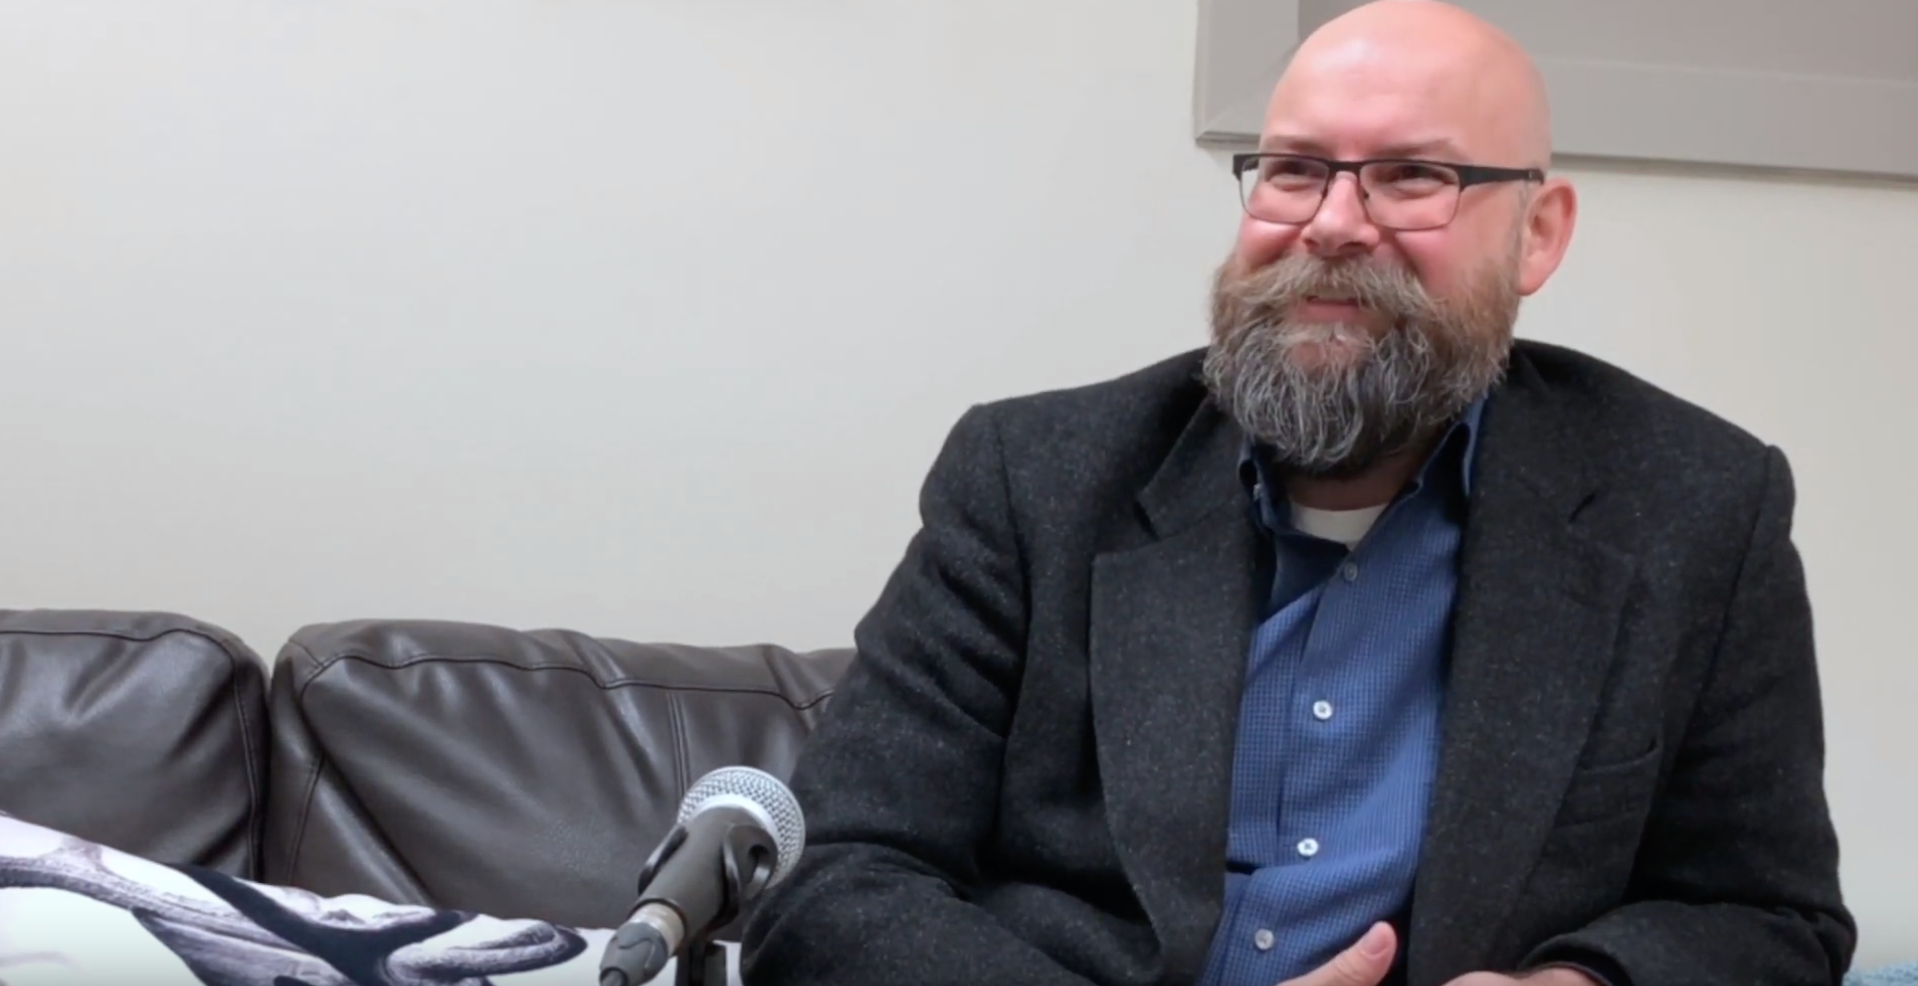 Male therapist smiling and answering a question